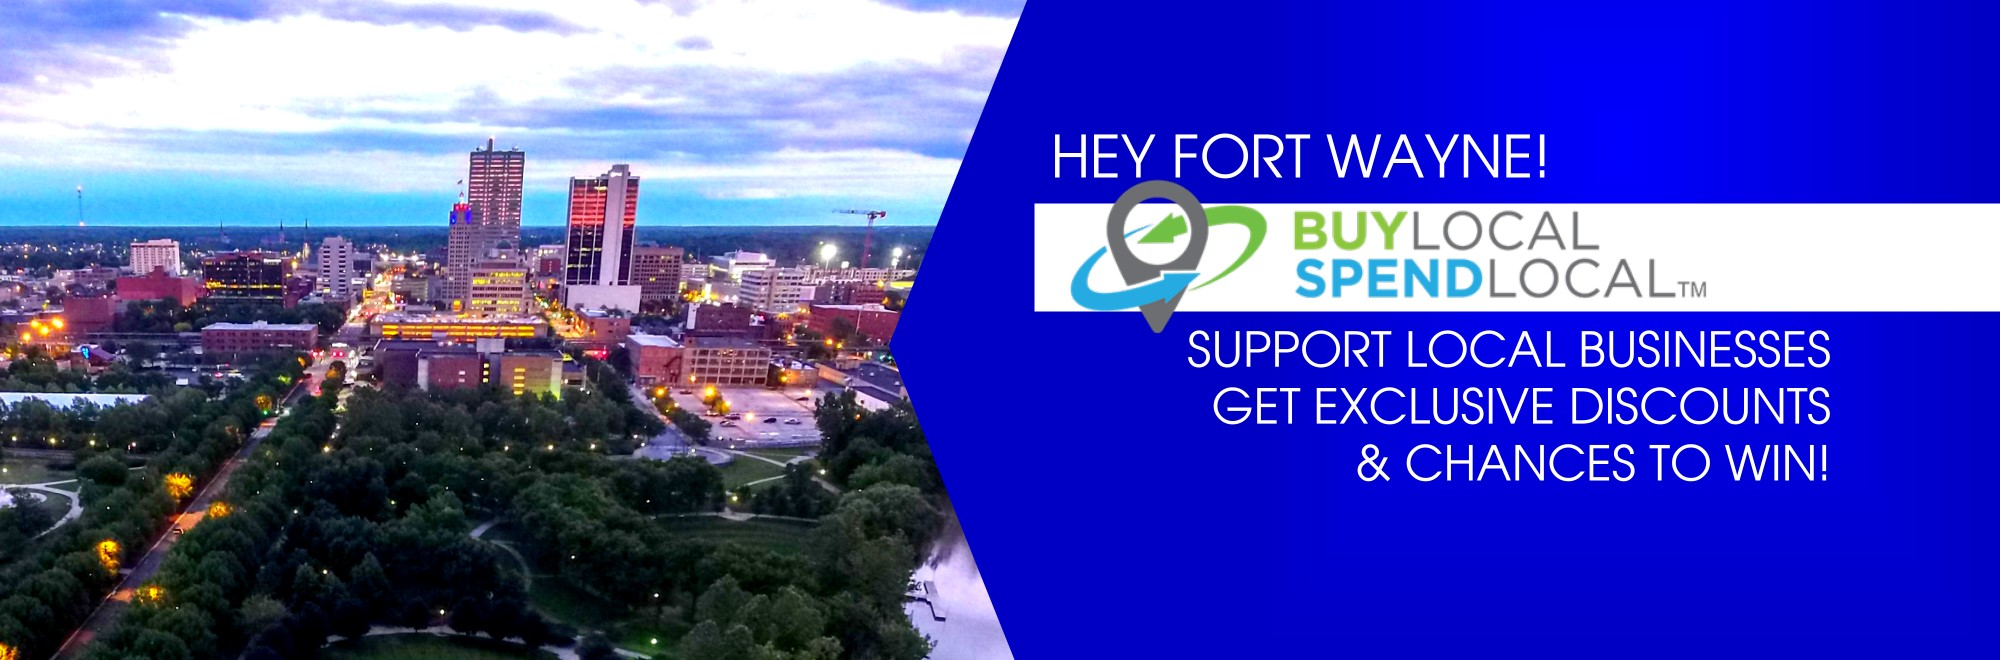 Hey Fort Wayne!!  Buy Local Spend Local.  Support Local Businesses. Get Exclusive Discounts. & Chances to win.